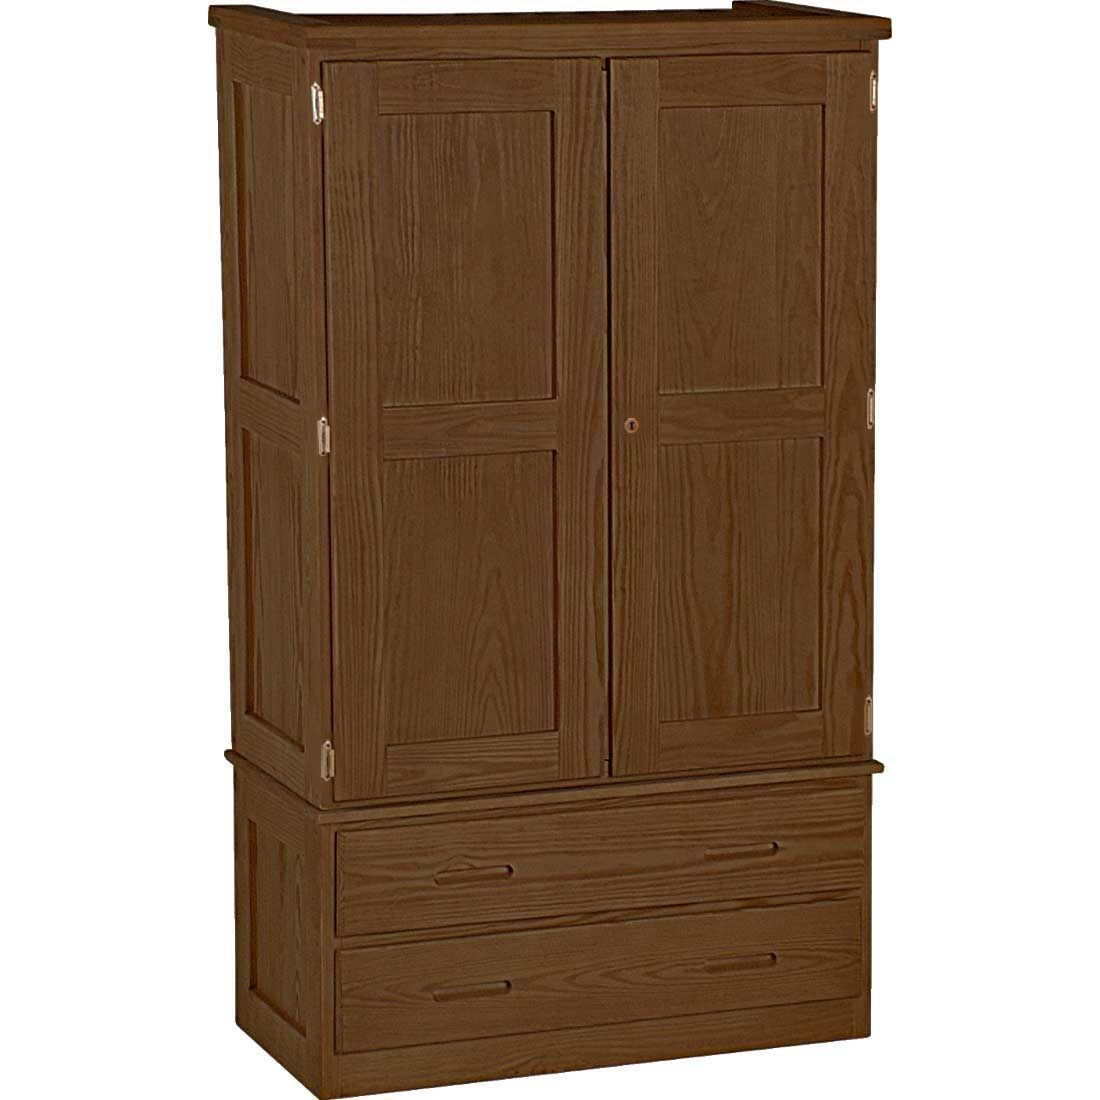 accent furniture comfortnight toronto armoire closet solid woods little table with drawers target dinner white bedside ikea outdoor cushions slim glass side grey set tables top